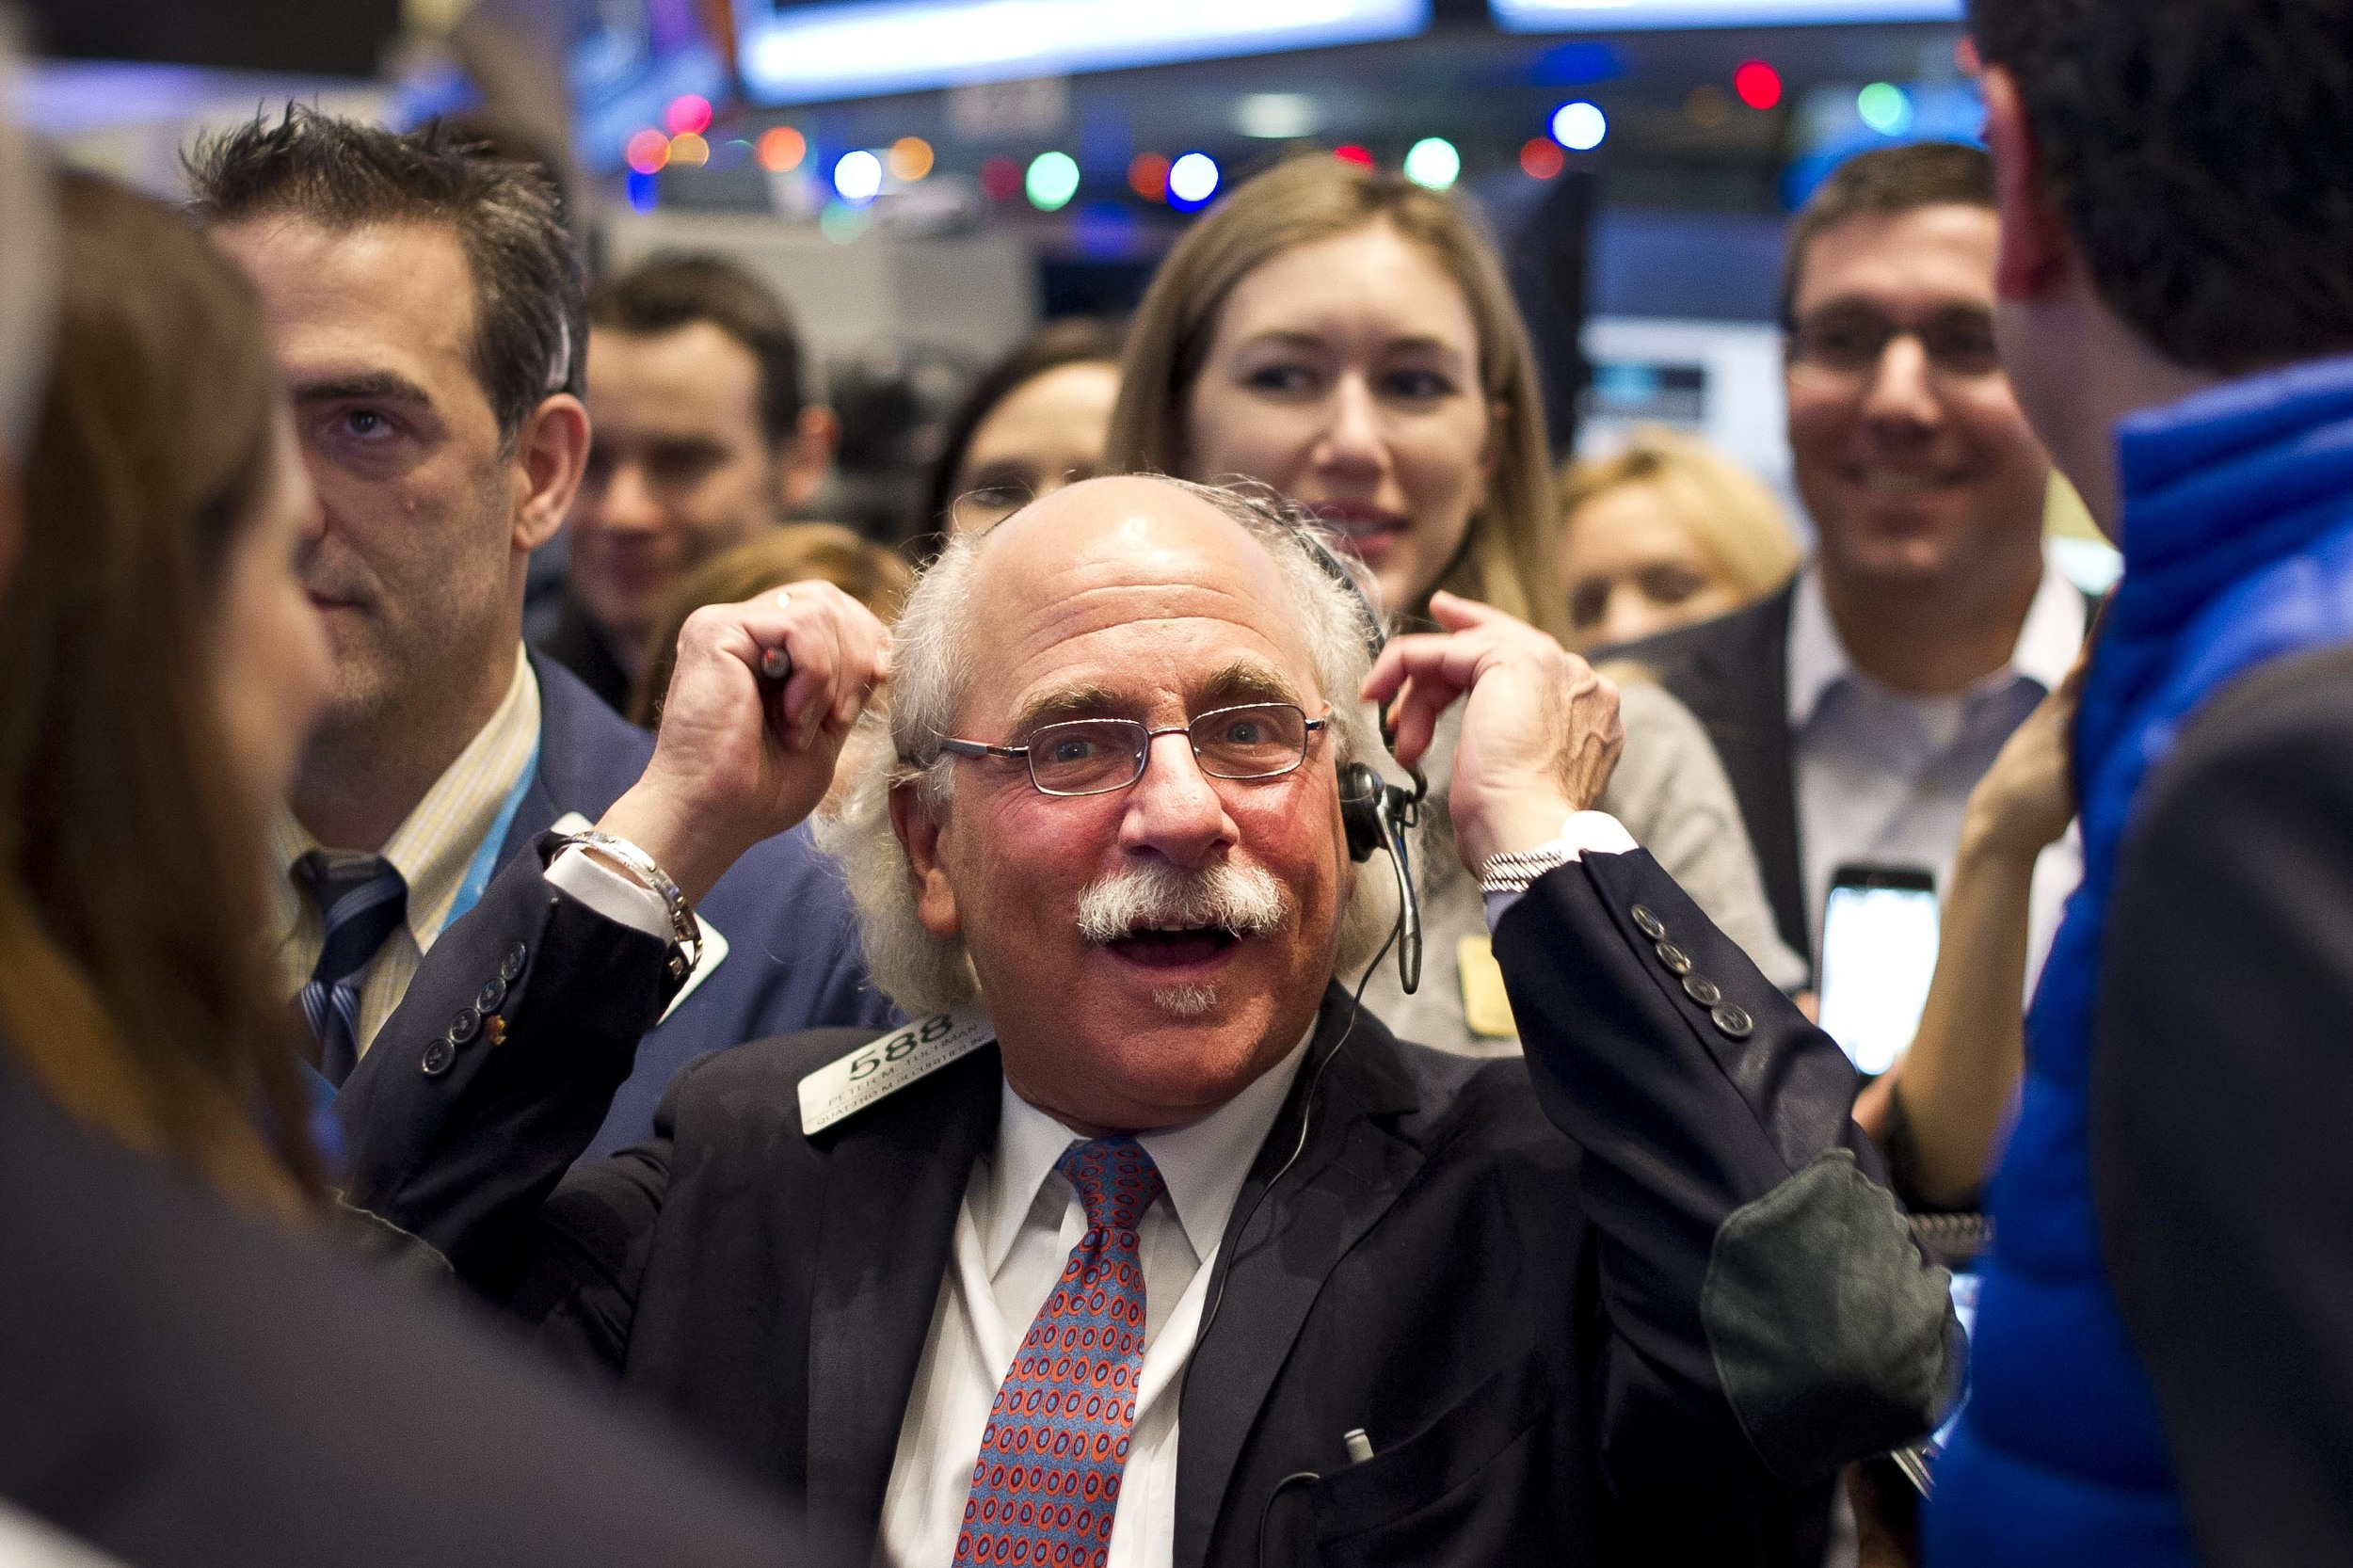 Peter Tuchman of Quattro M. Securities, Inc., jokes with OnDeck executives as the company begins its first day of trading on December 17, 2014.